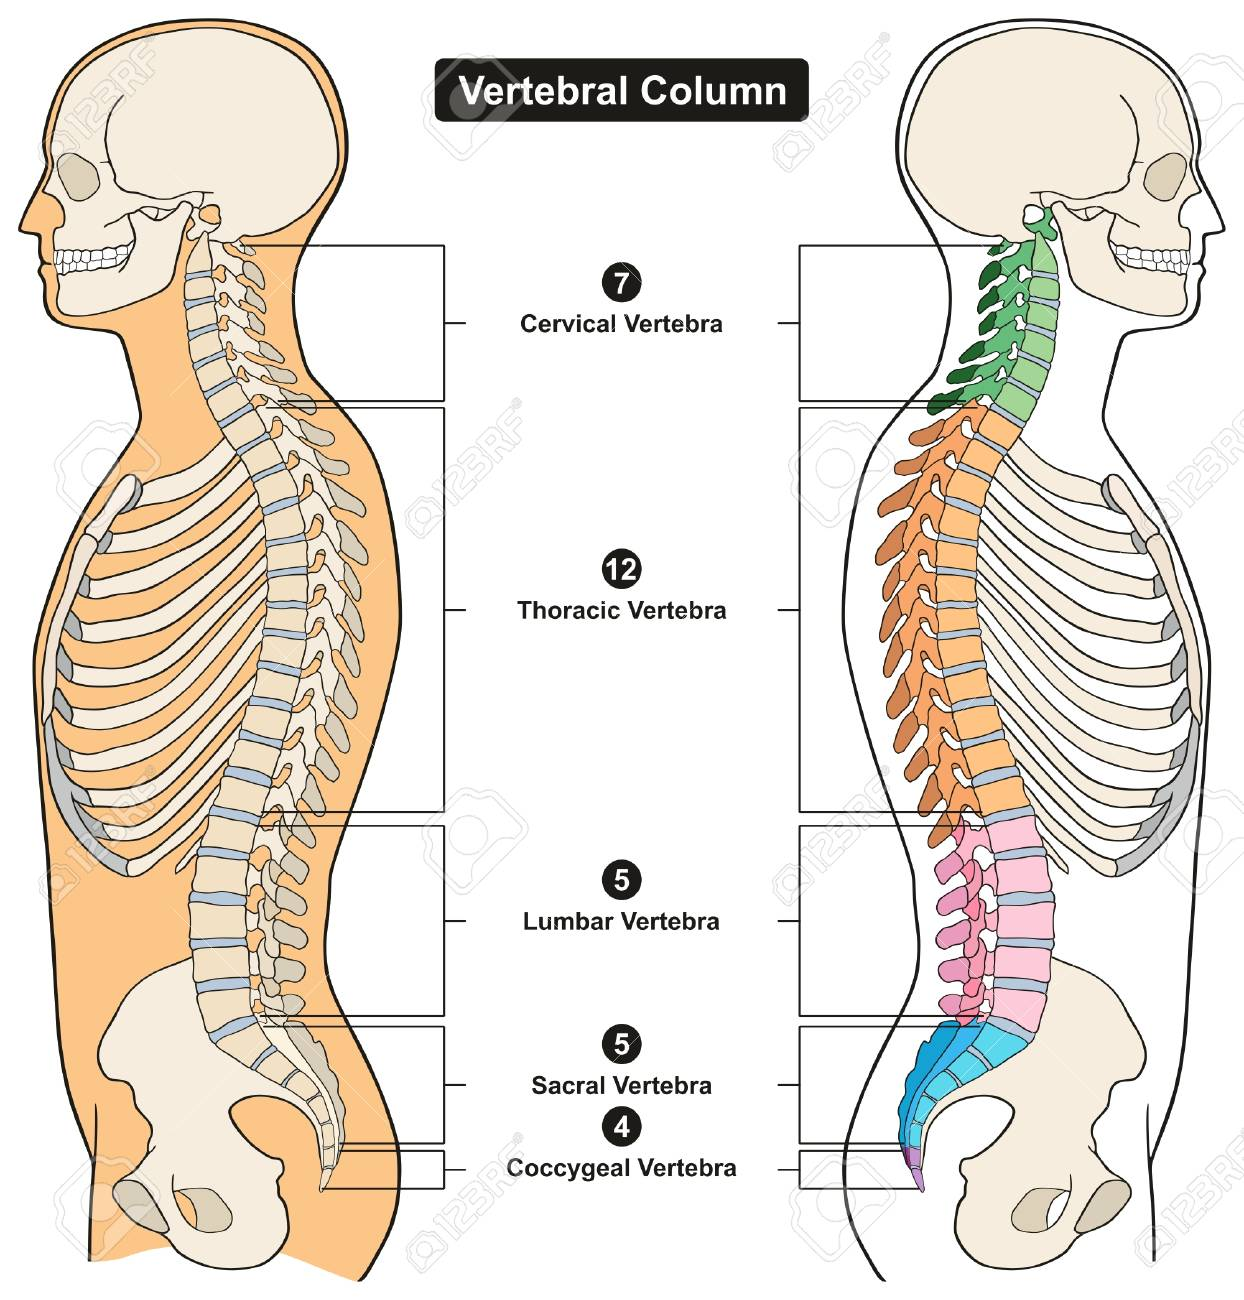 hight resolution of vector vertebral column of human body anatomy infograpic diagram including all vertebra cervical thoracic lumbar sacral and coccygeal for medical science